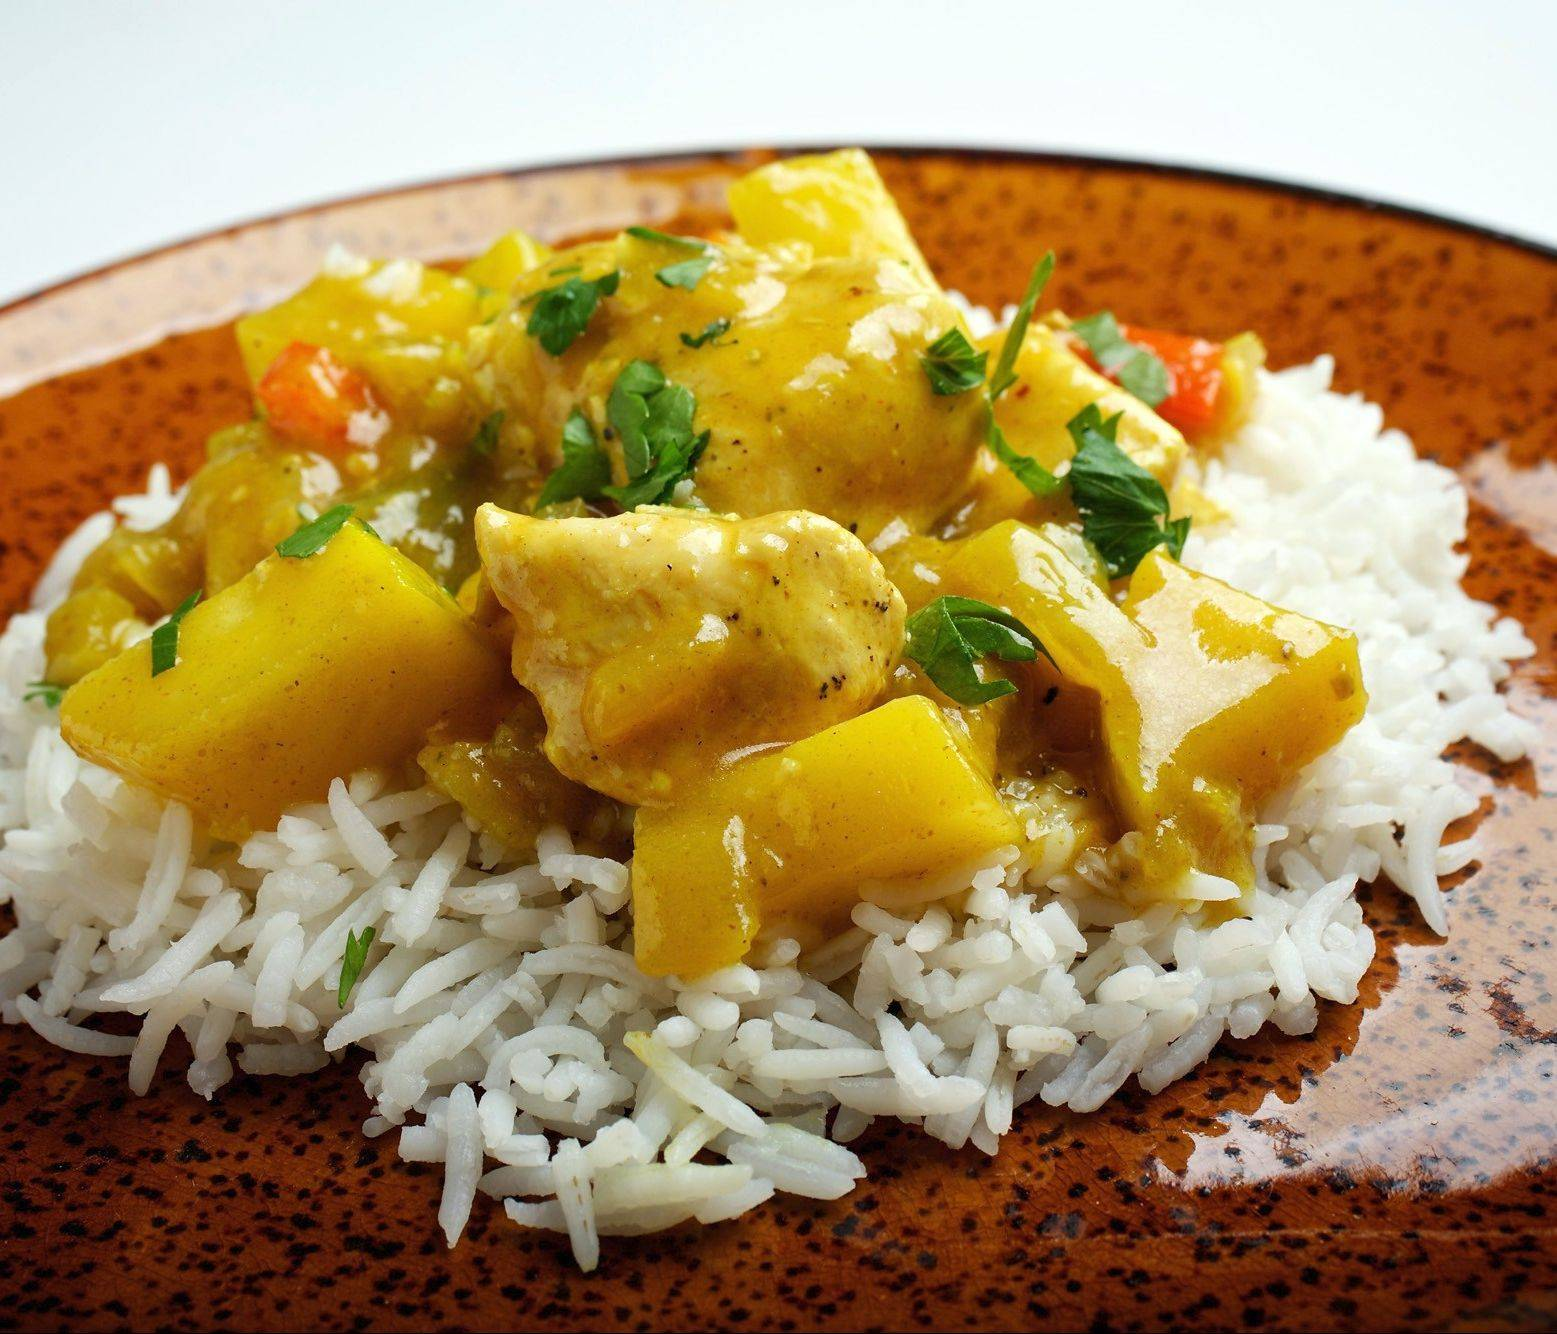 Sweet Apple Chicken Curry has a pleasant balance of textures and flavors.